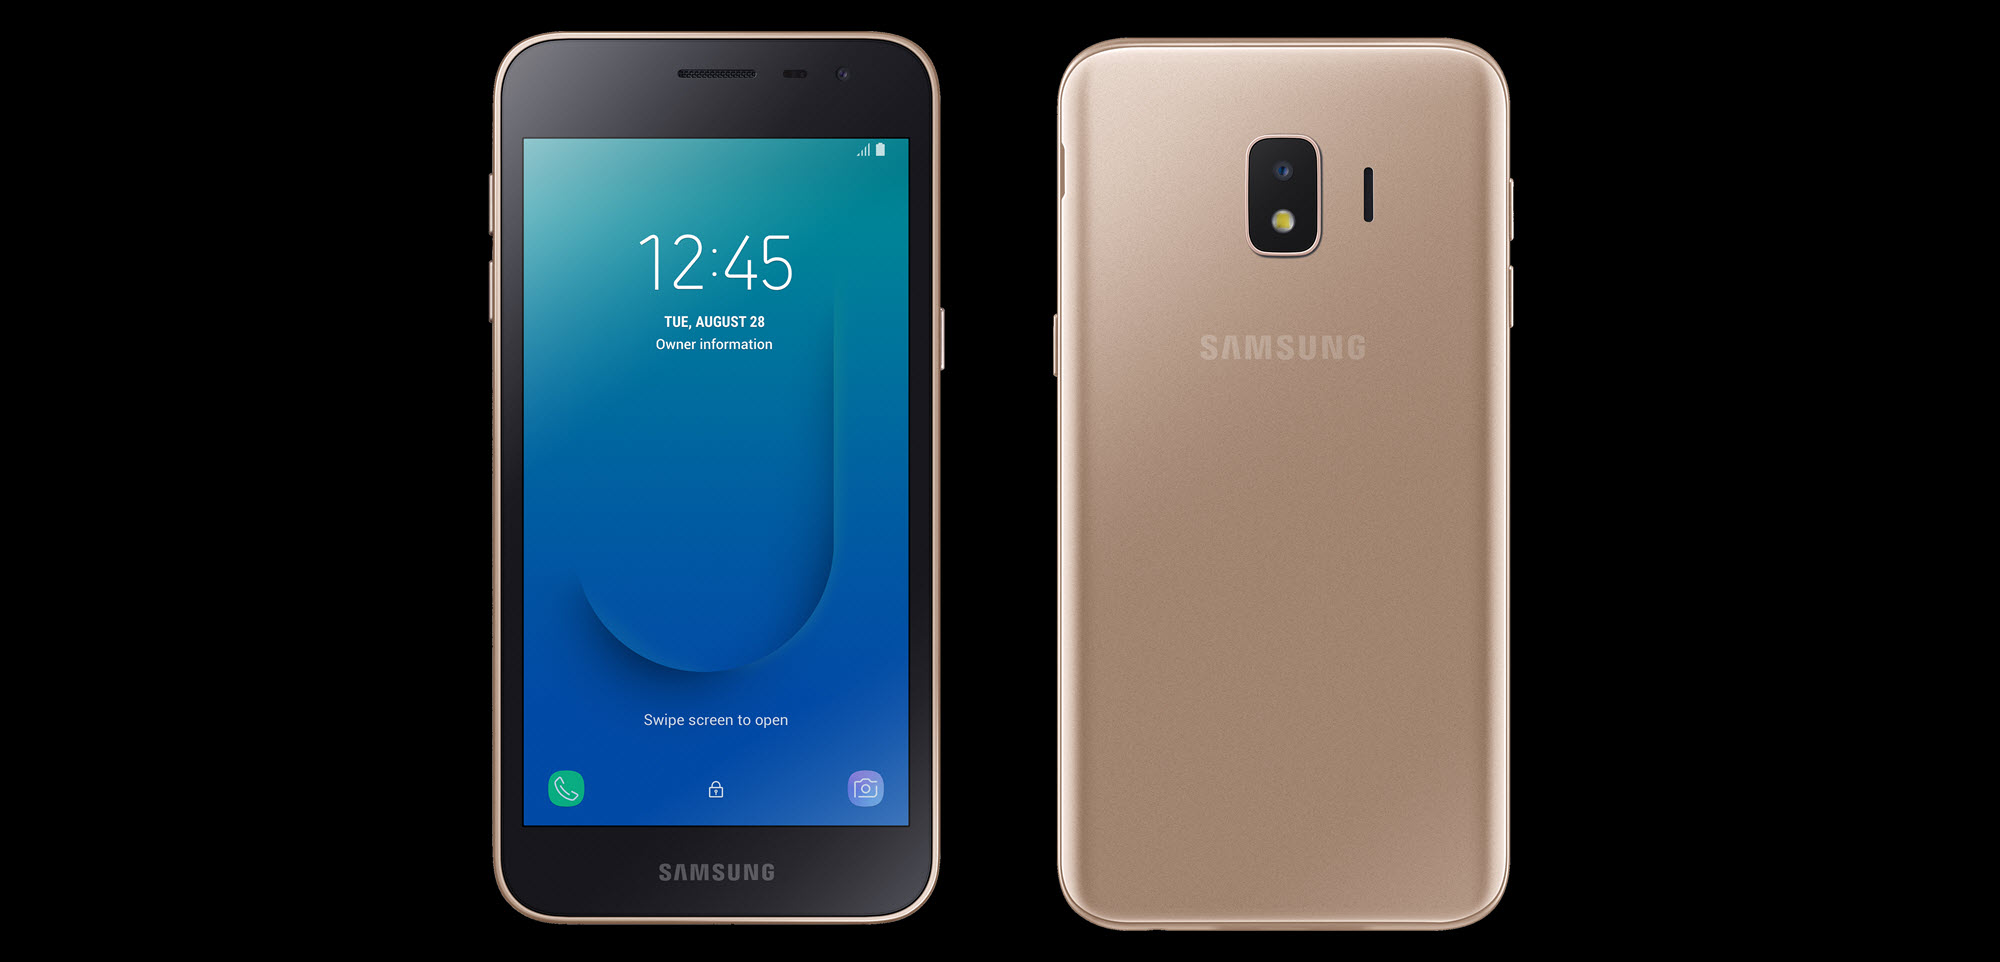 Samsung Galaxy J2 Core with Android Go Launched  Specs, availability e909fc31bc37